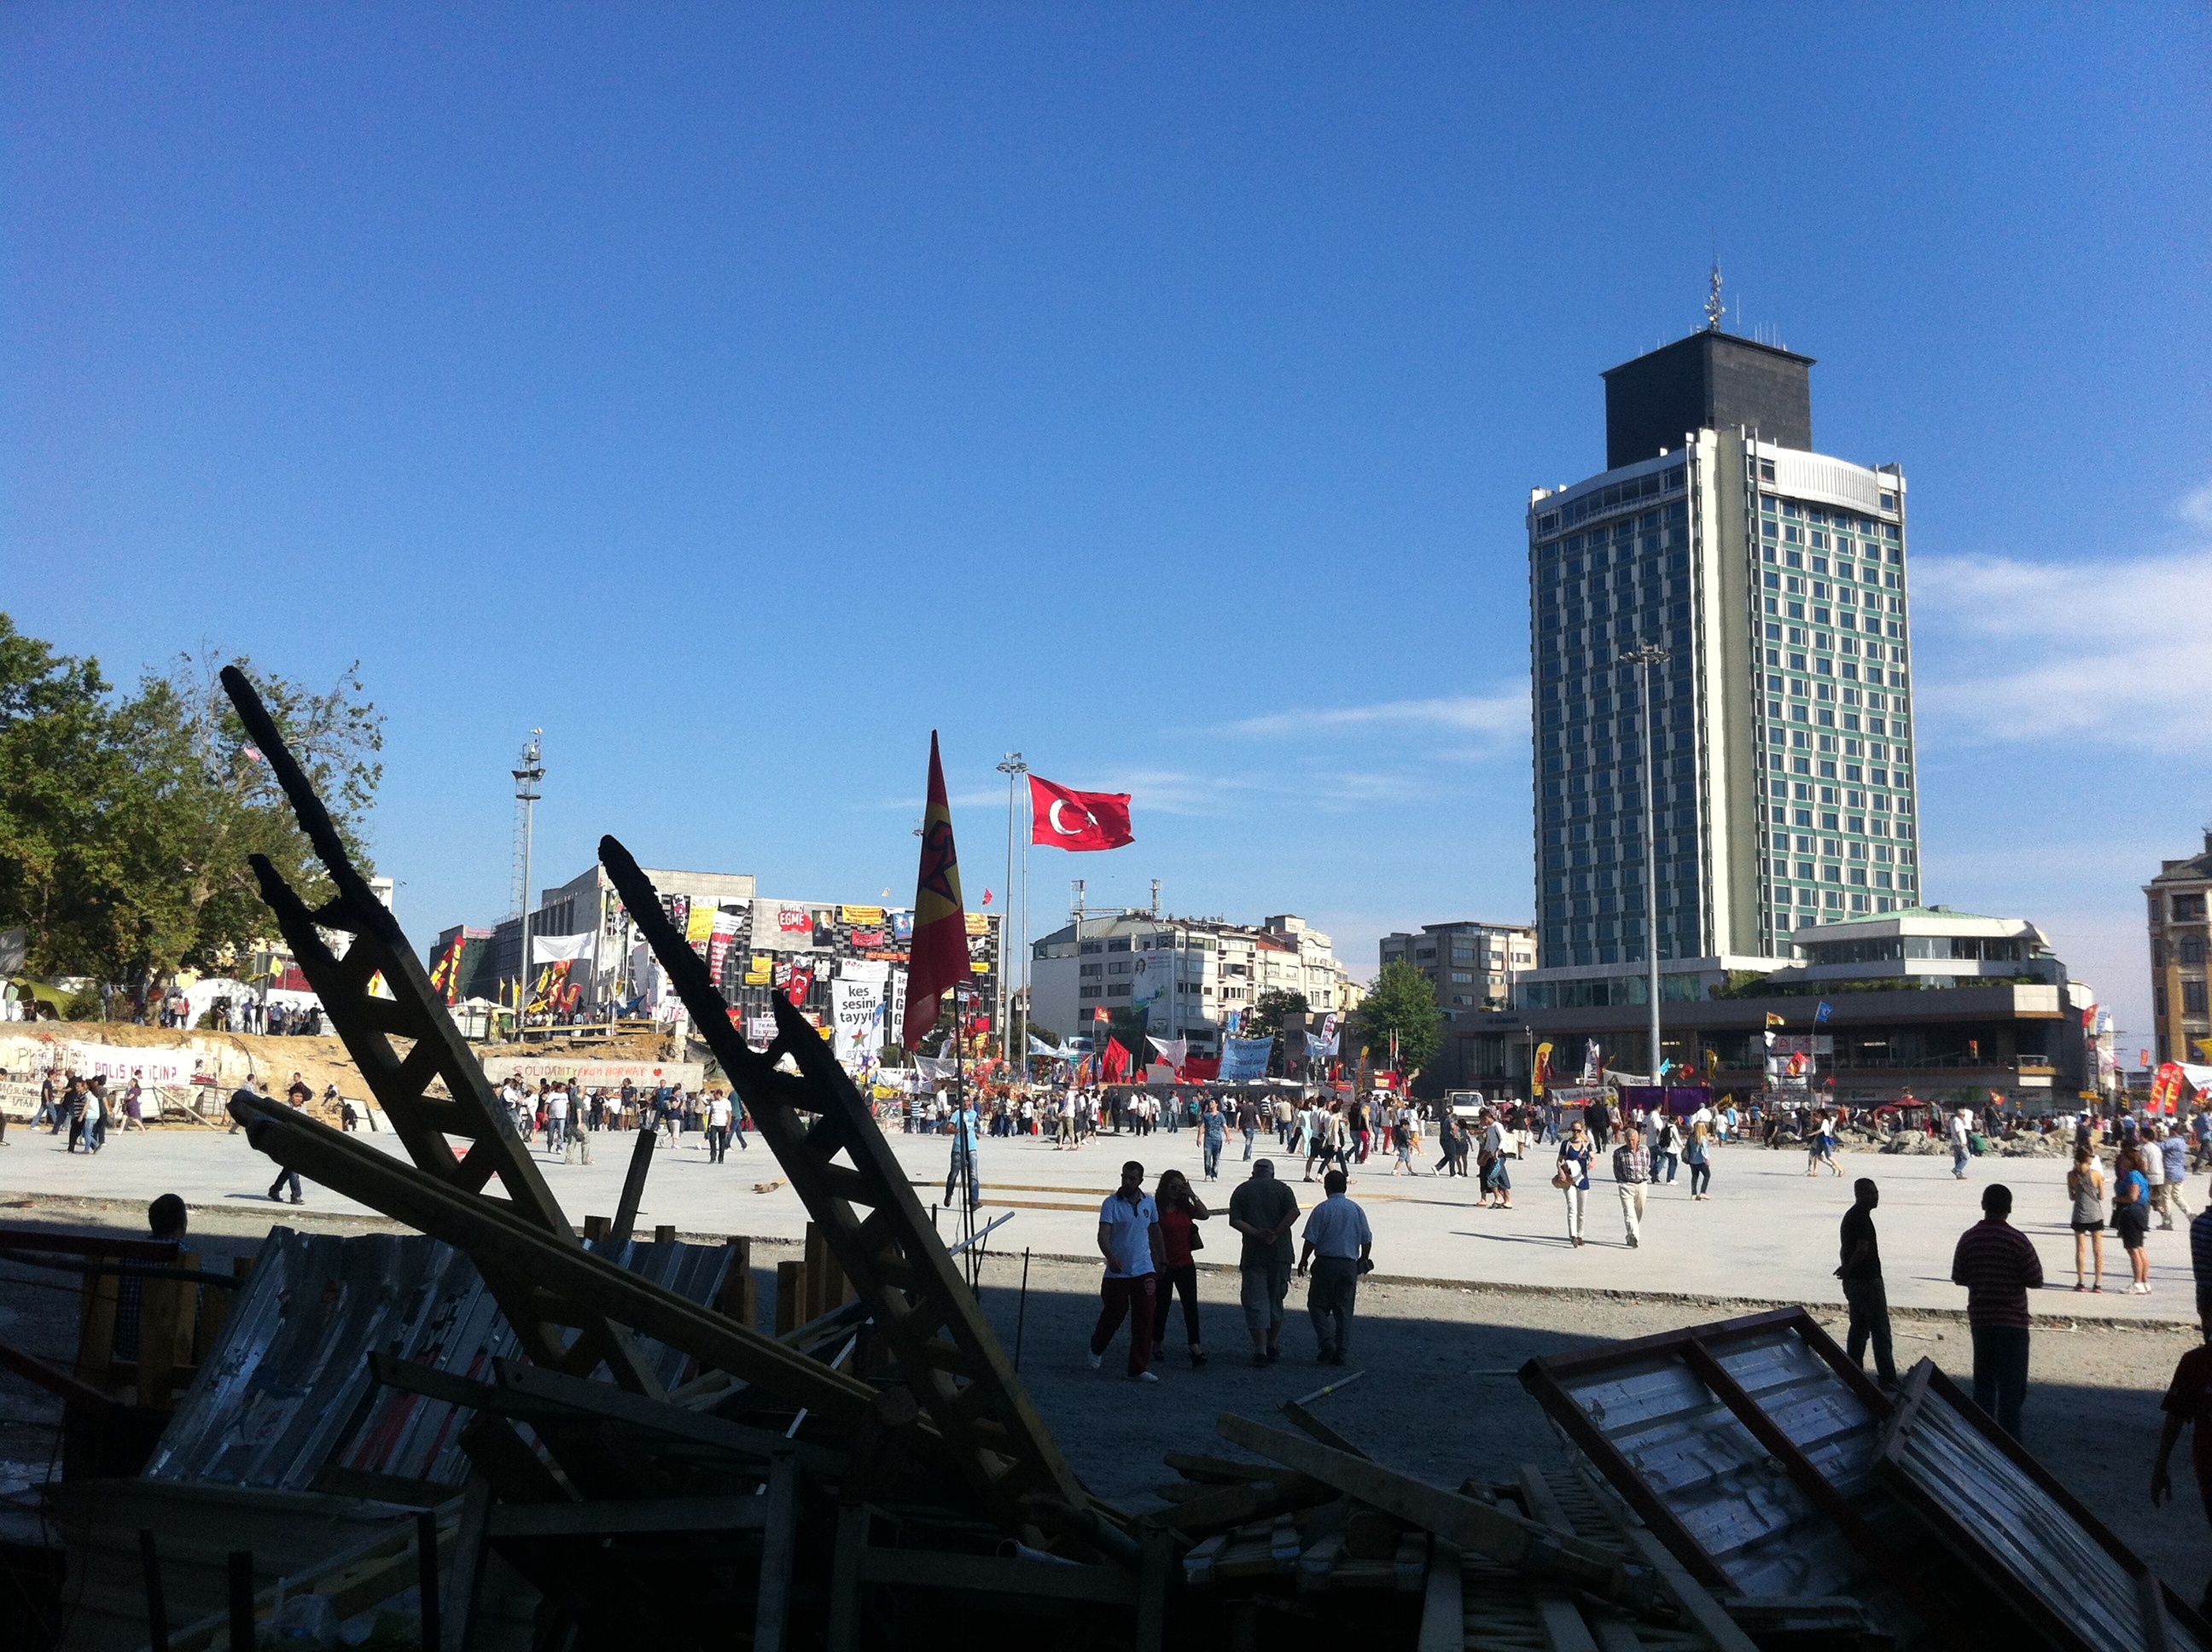 2013: the year of the Gezi miracle